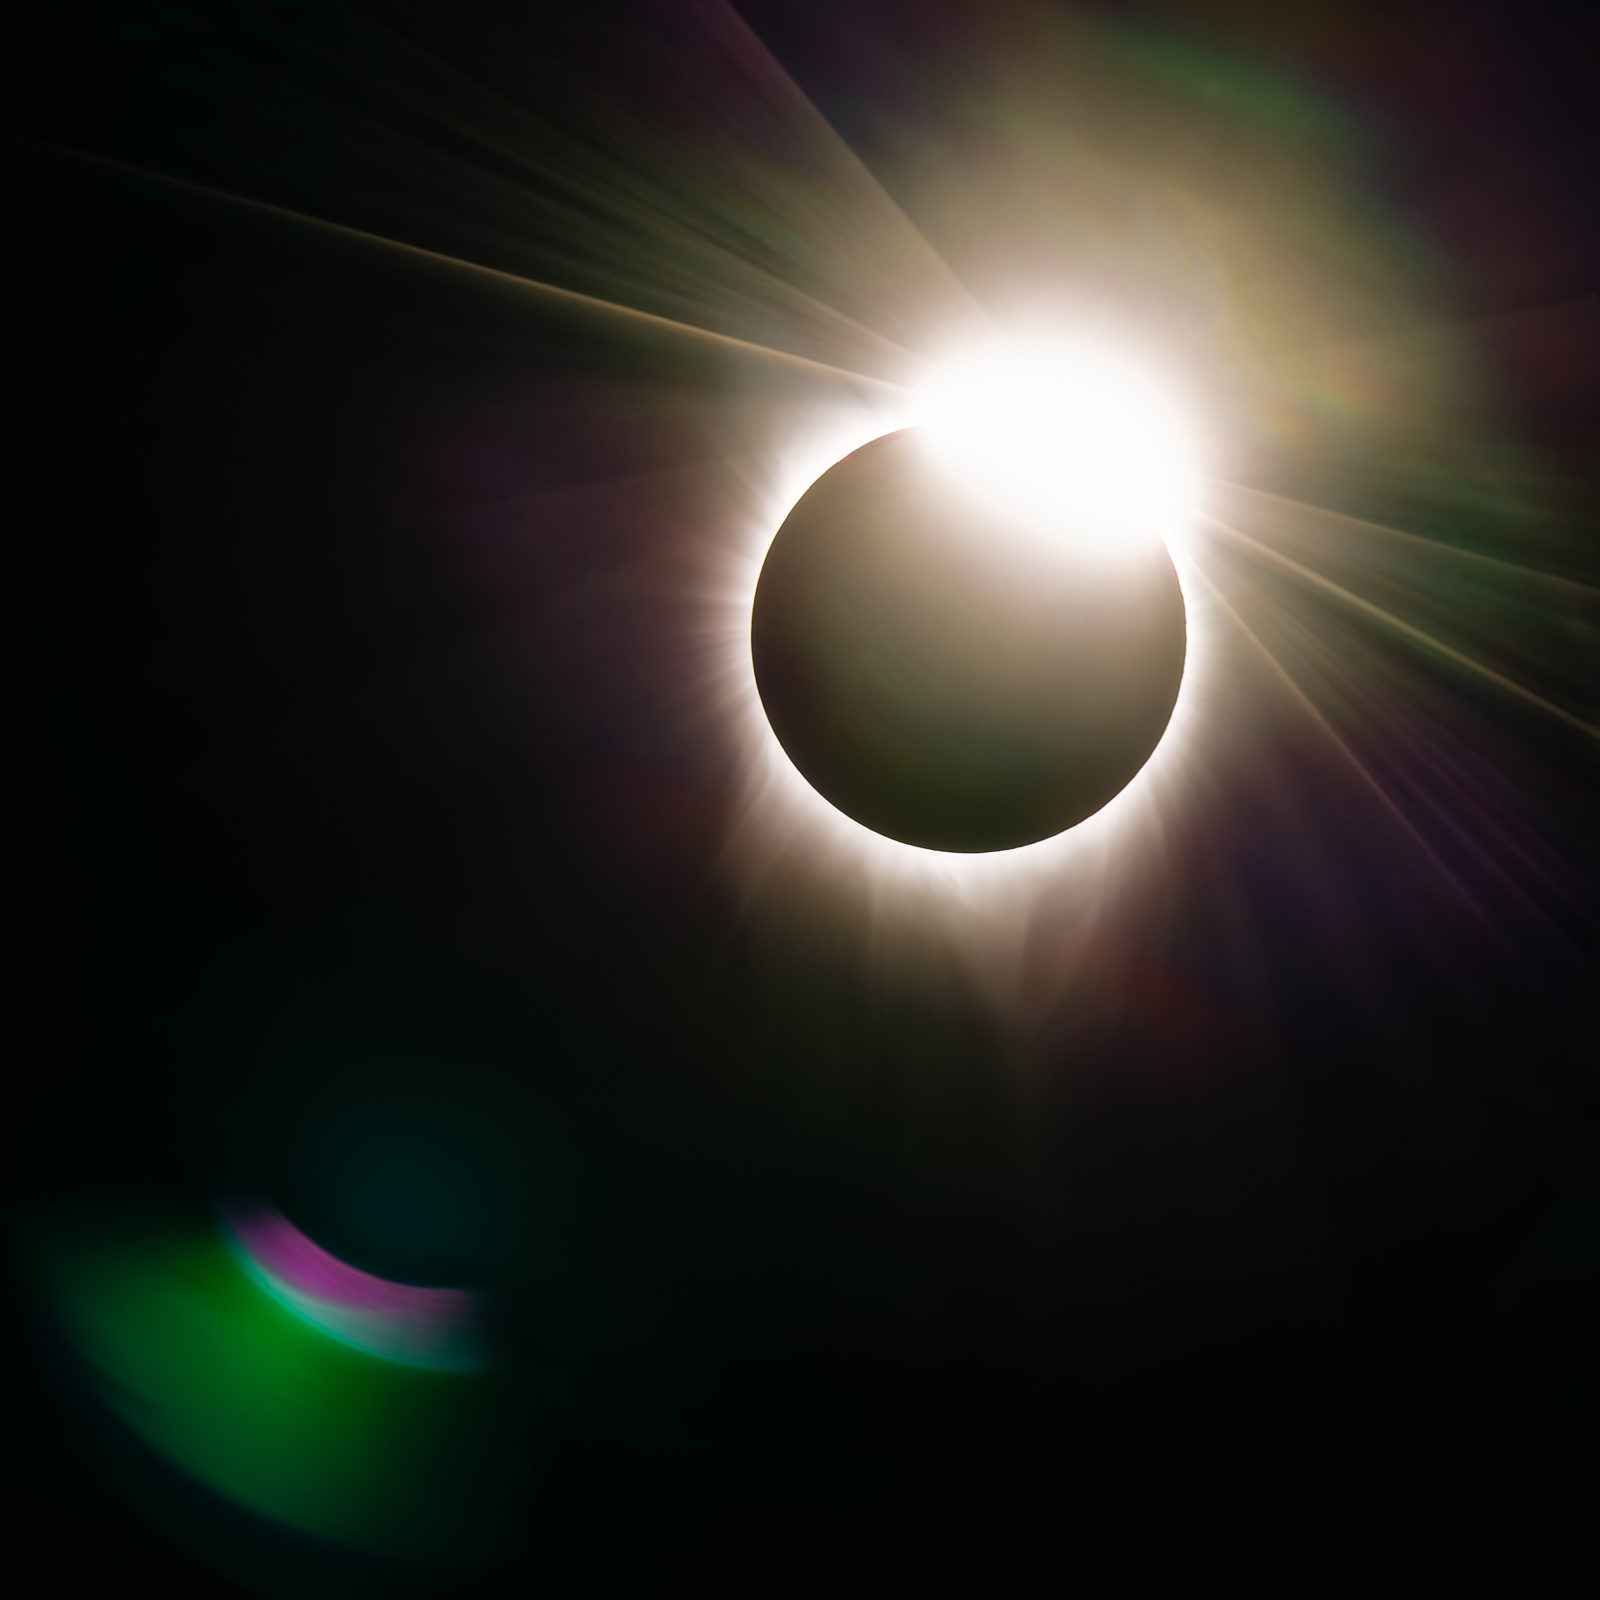 After Totality